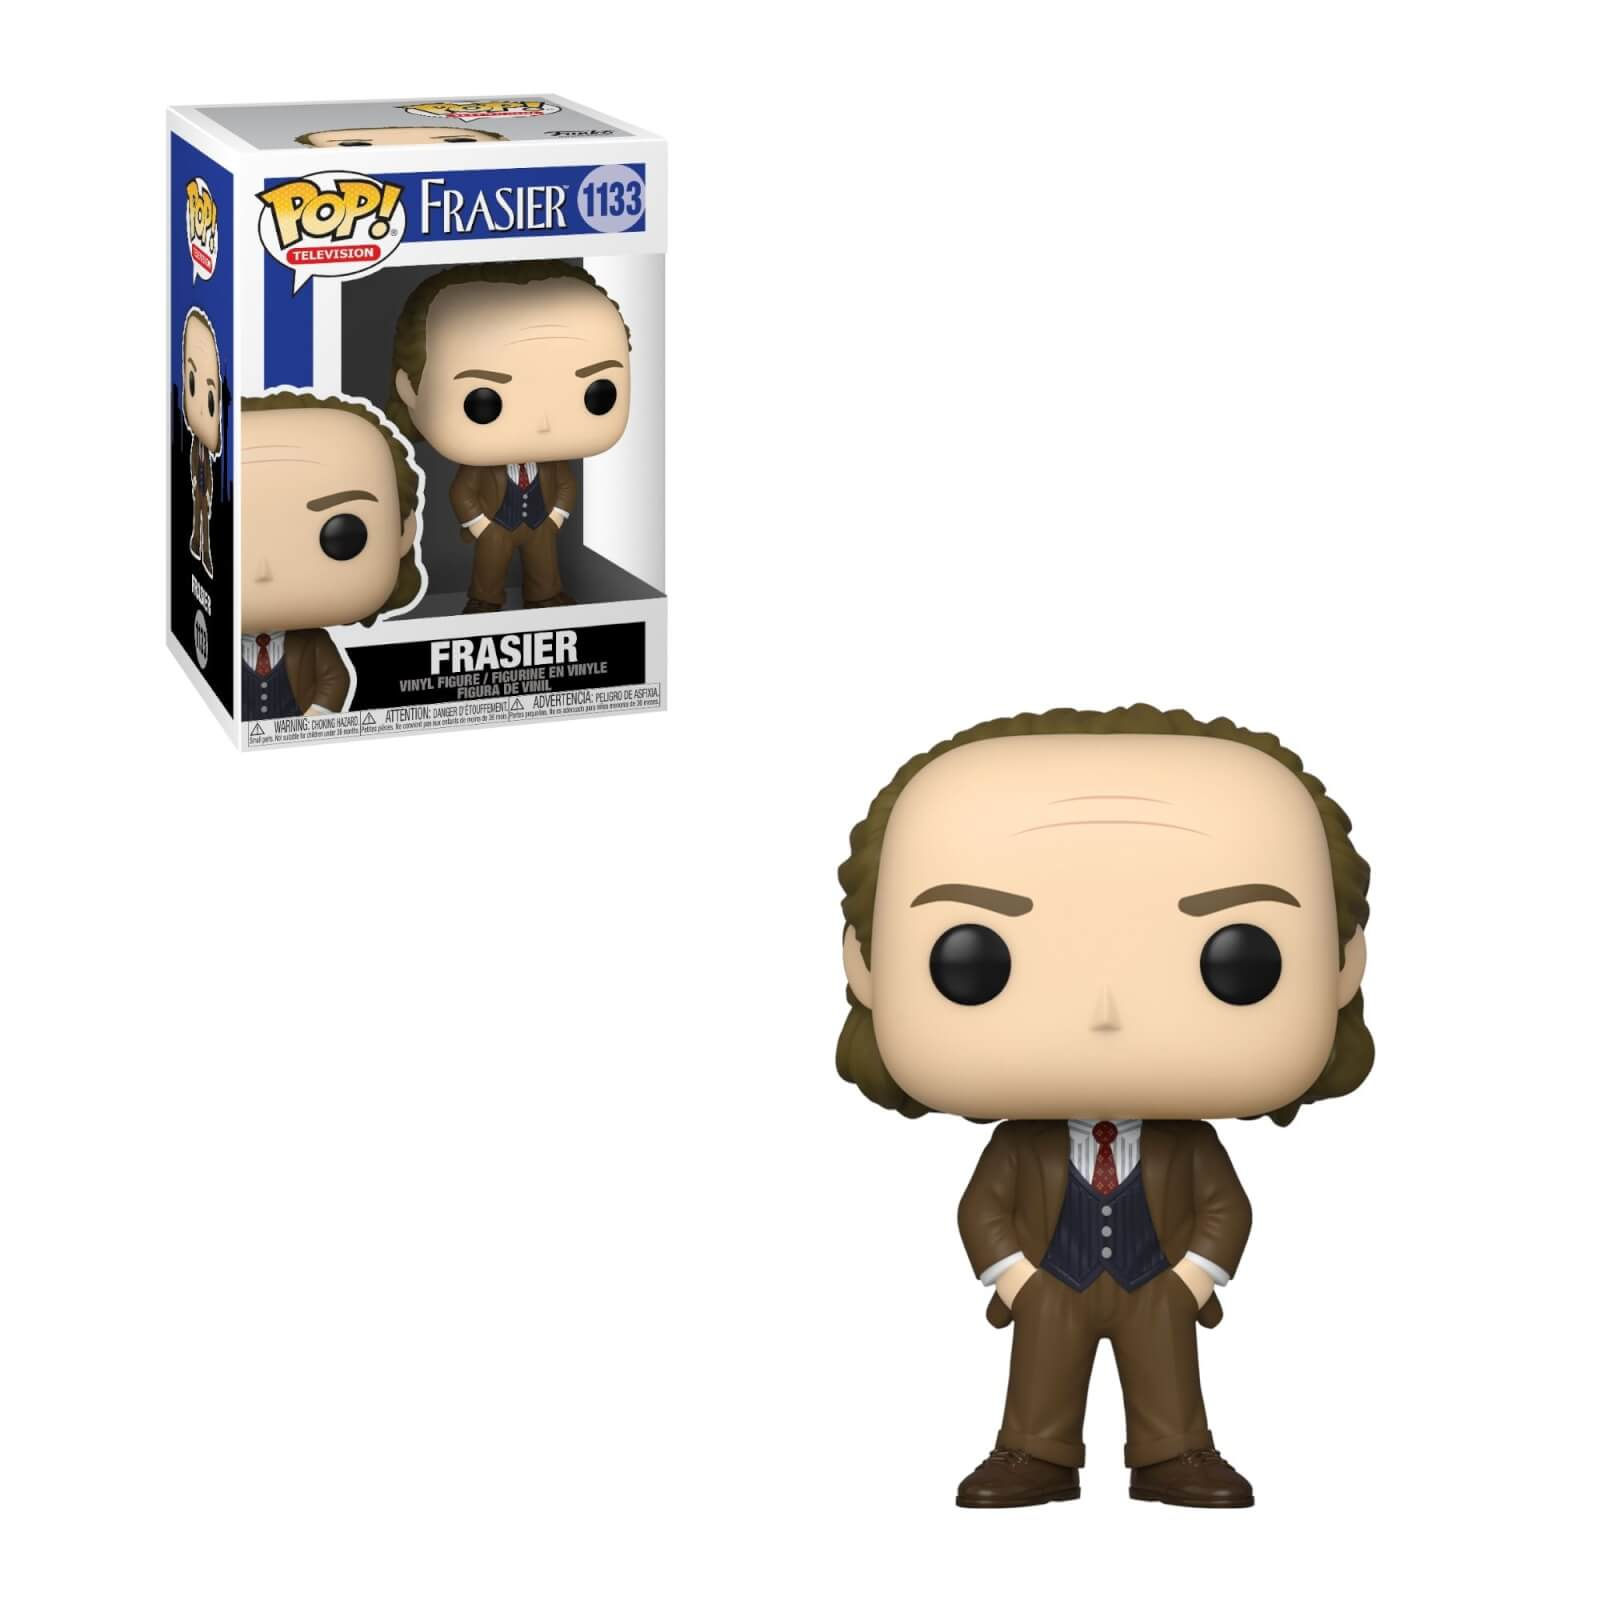 Frasier Funko Pop! Vinyl are now a thing!